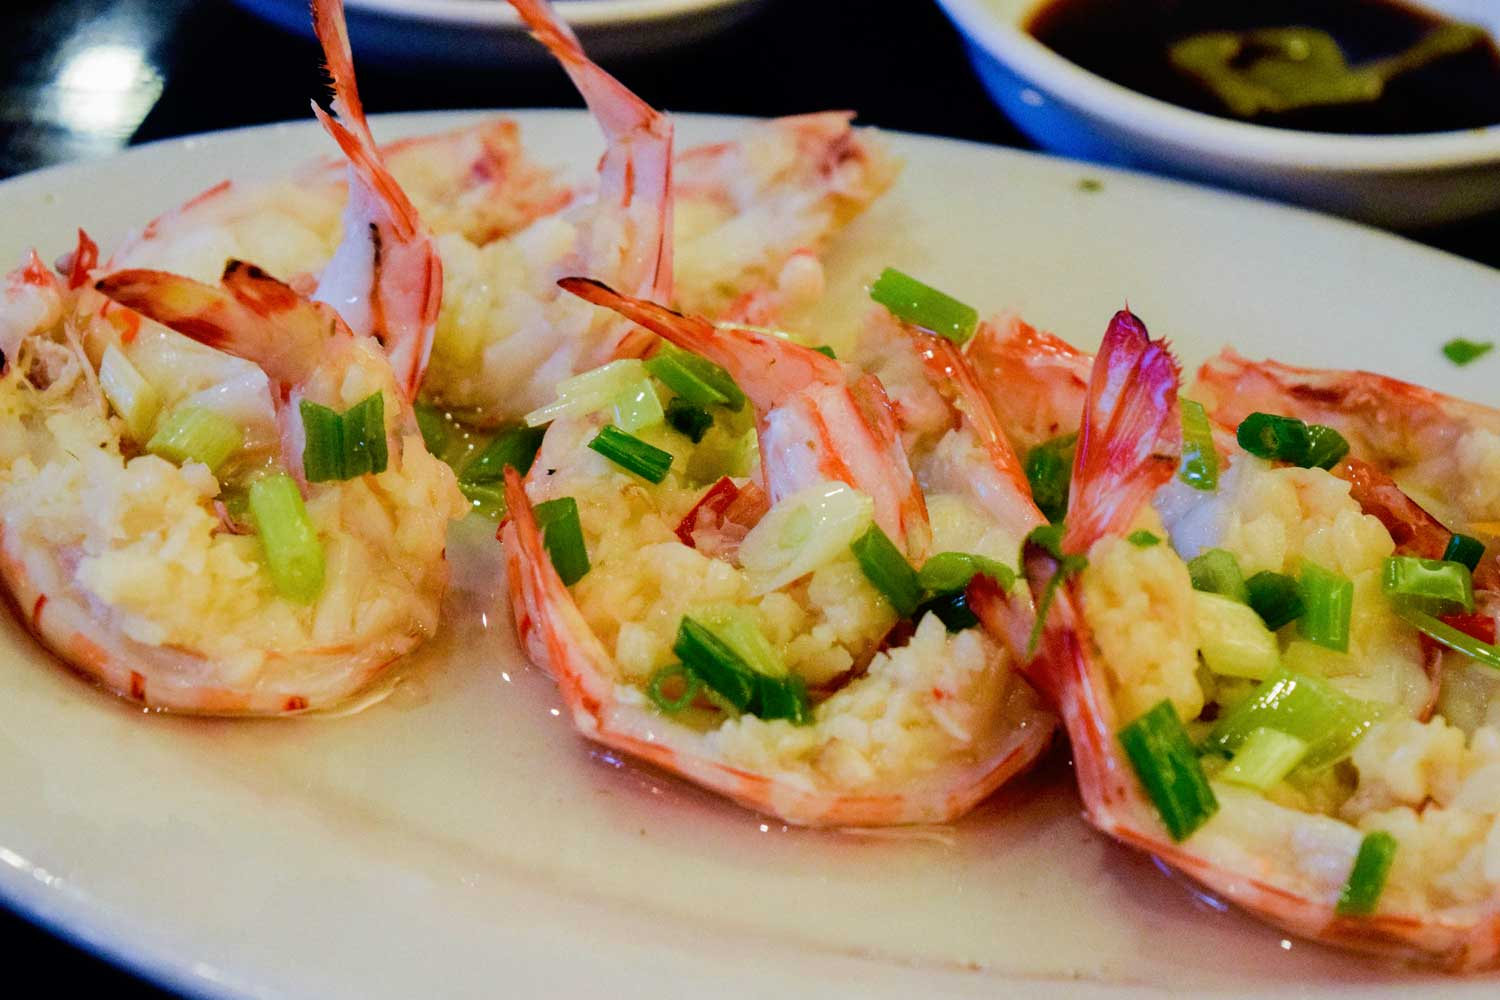 Shrimp topped with scallion and minced garlic